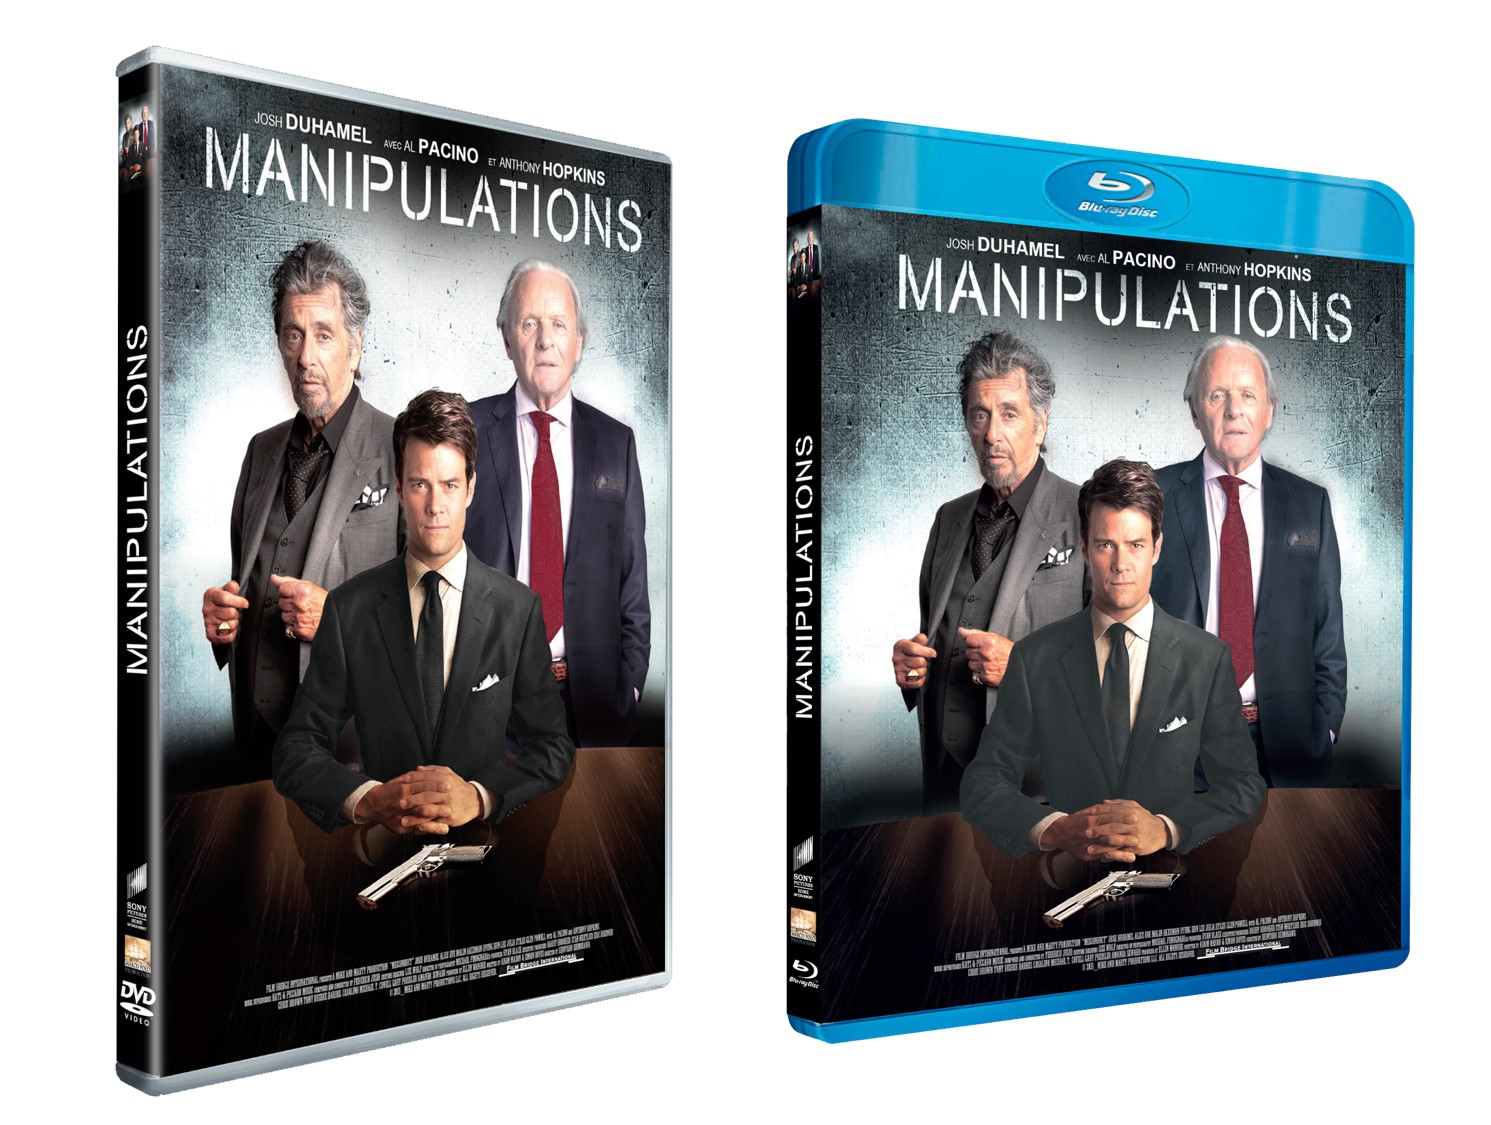 MANIPULATION(S) - Visuel combiné BLU RAY DVD France film Al Pacino Anthony Hopkins 2016 - Go with the Blog